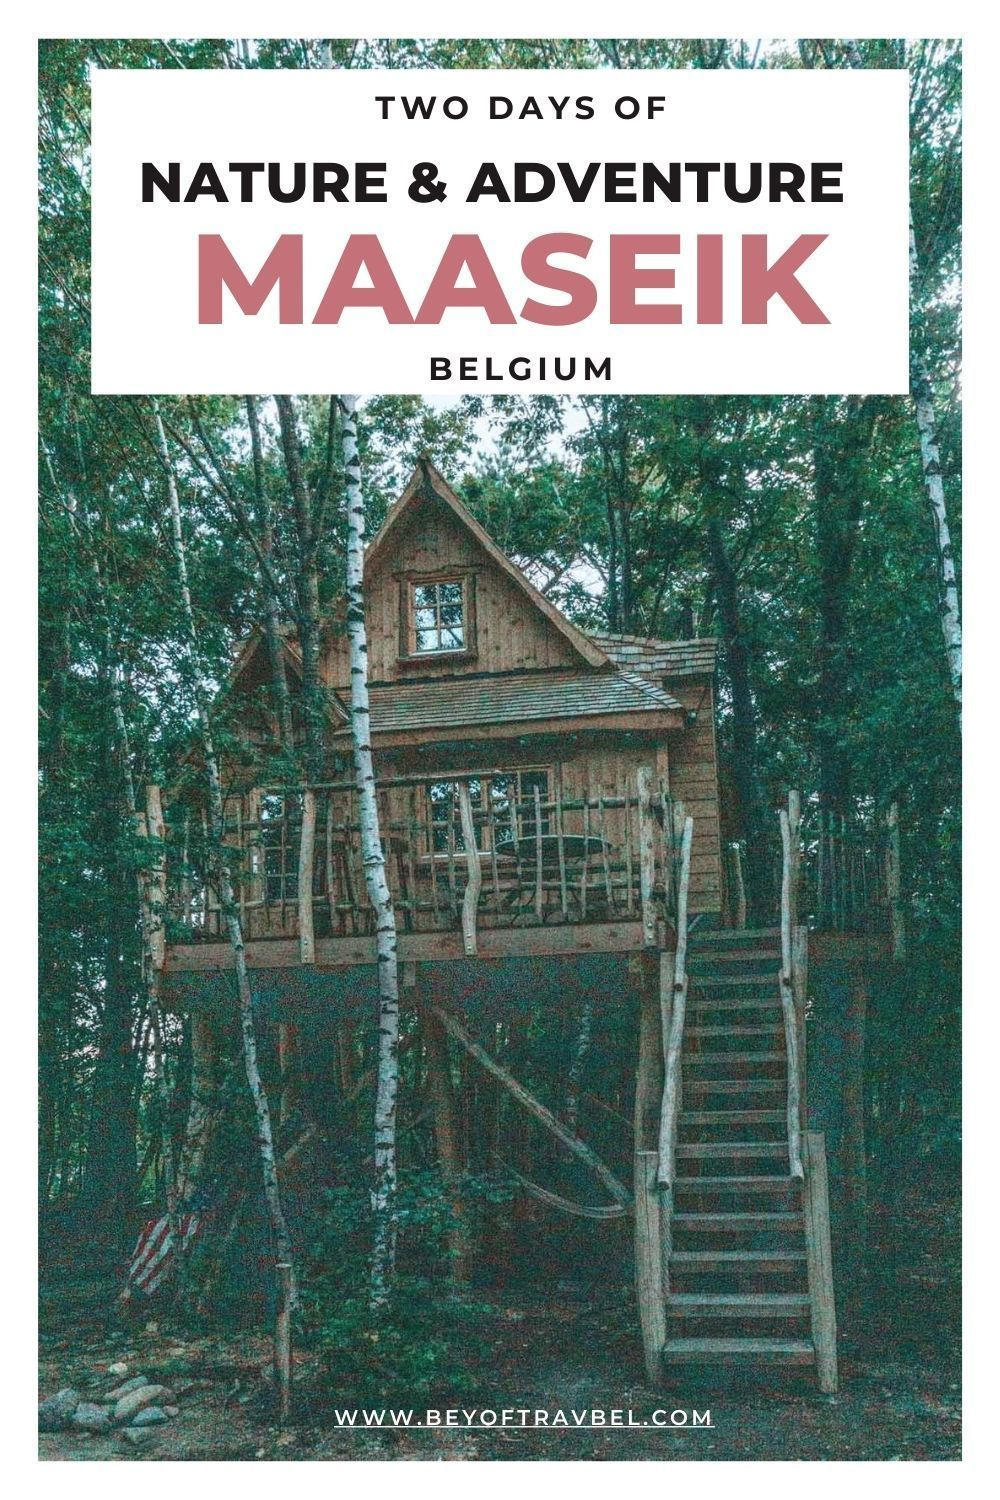 Explore Maaseik - Two days of nature and adventure